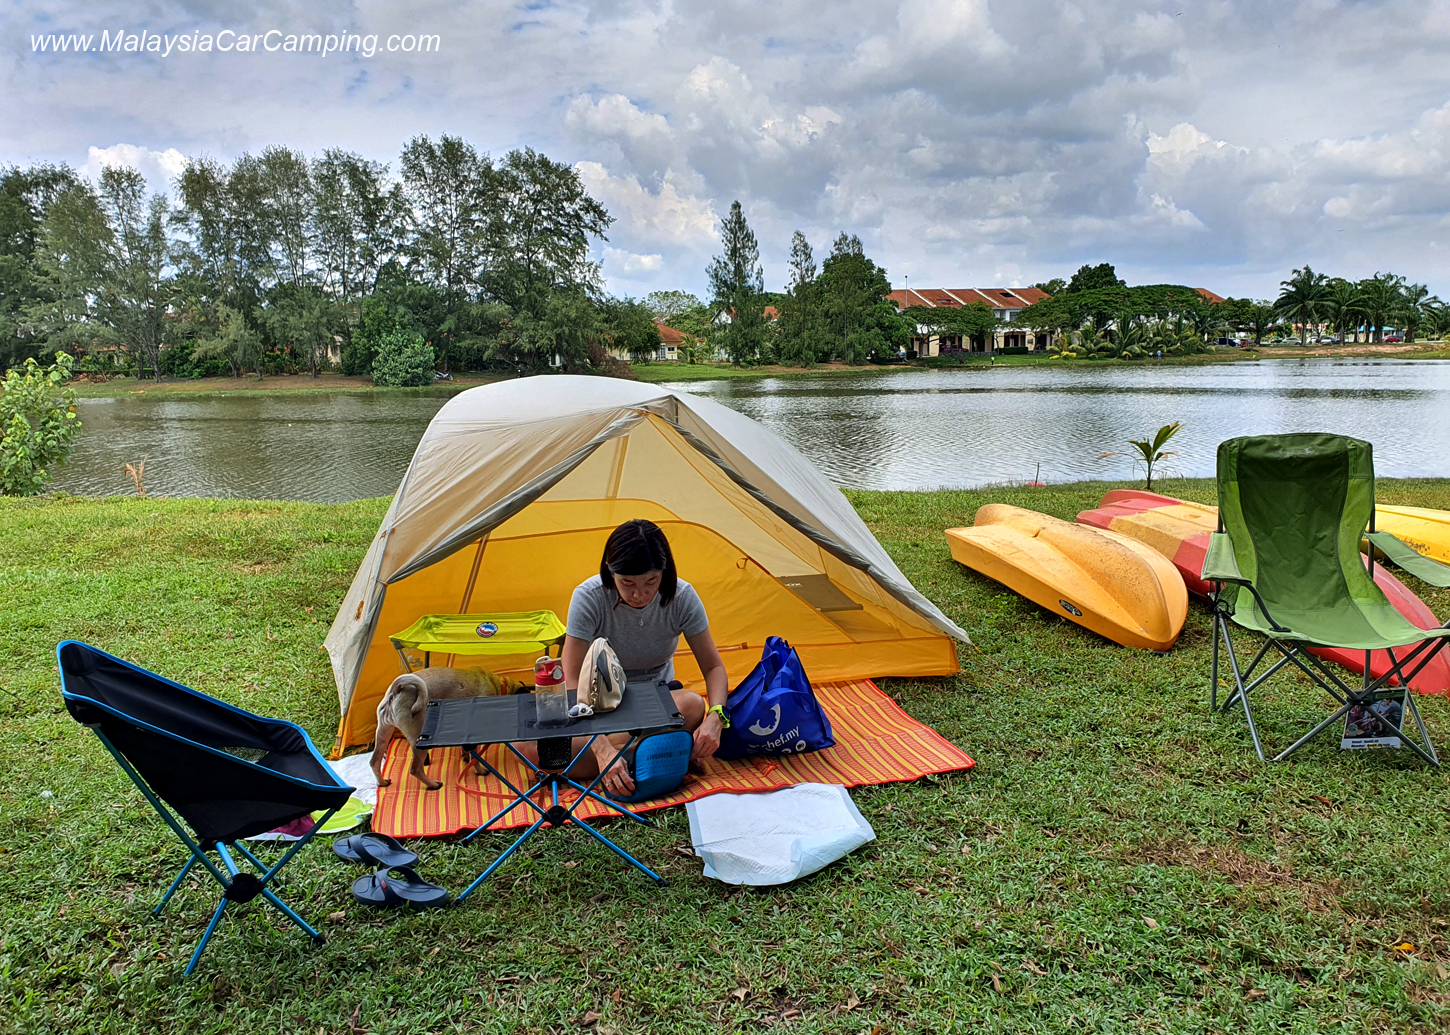 camping_with_dogs_puppy_lakeside_camping_malaysia_car_camping_malaysia_campsite-8